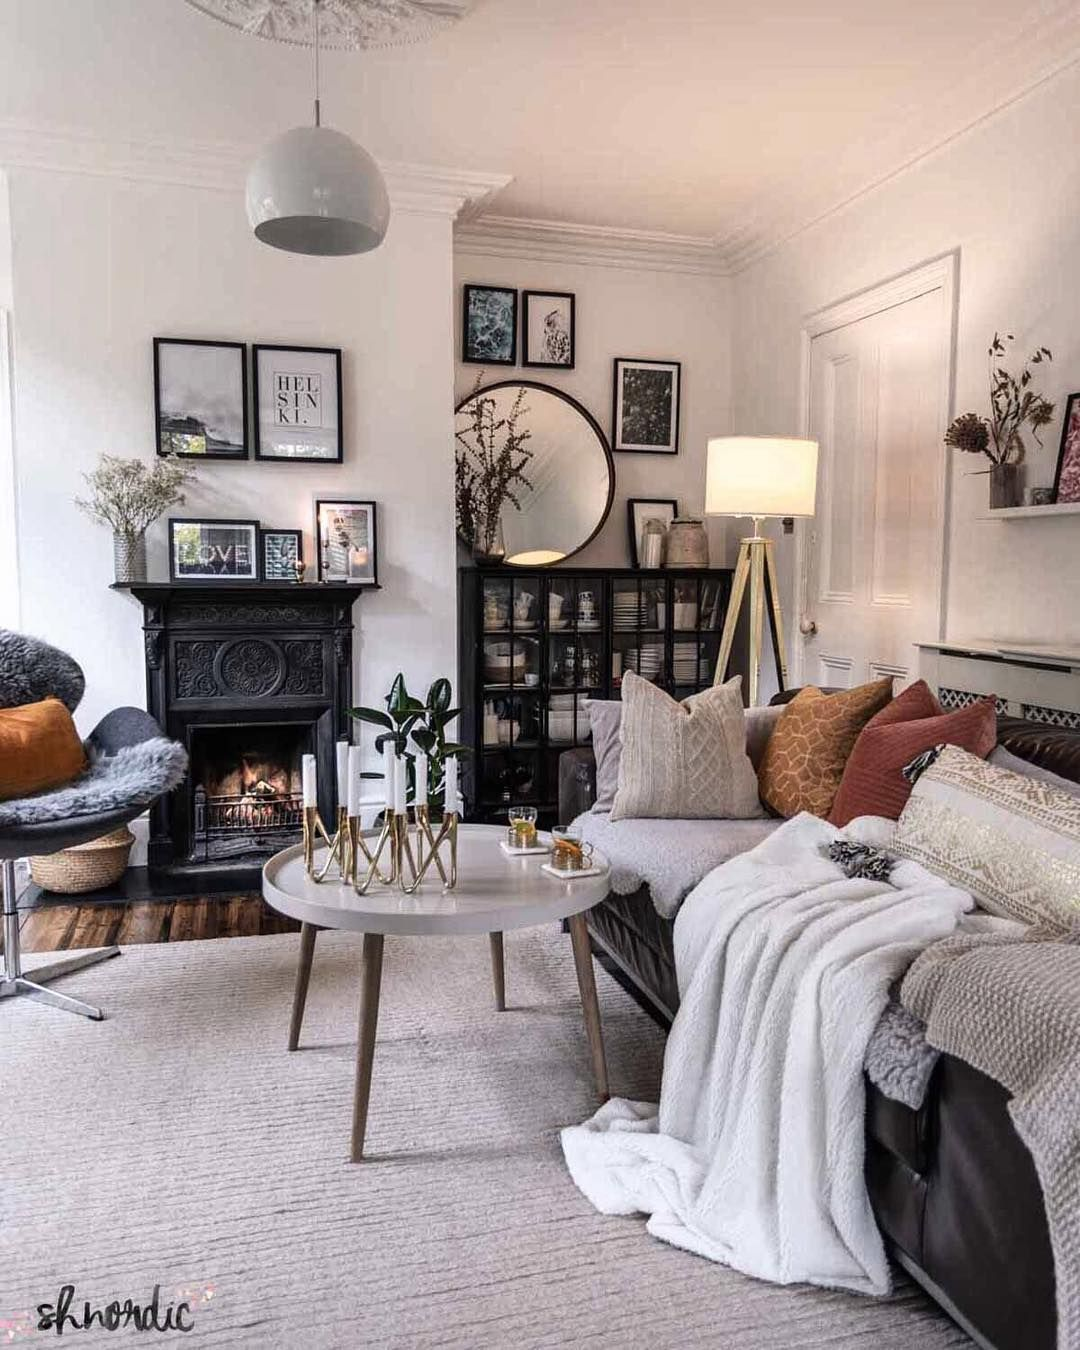 Monochrome can still be cosy and inviting white walls and black furniture combined with soft natural textures and gold details